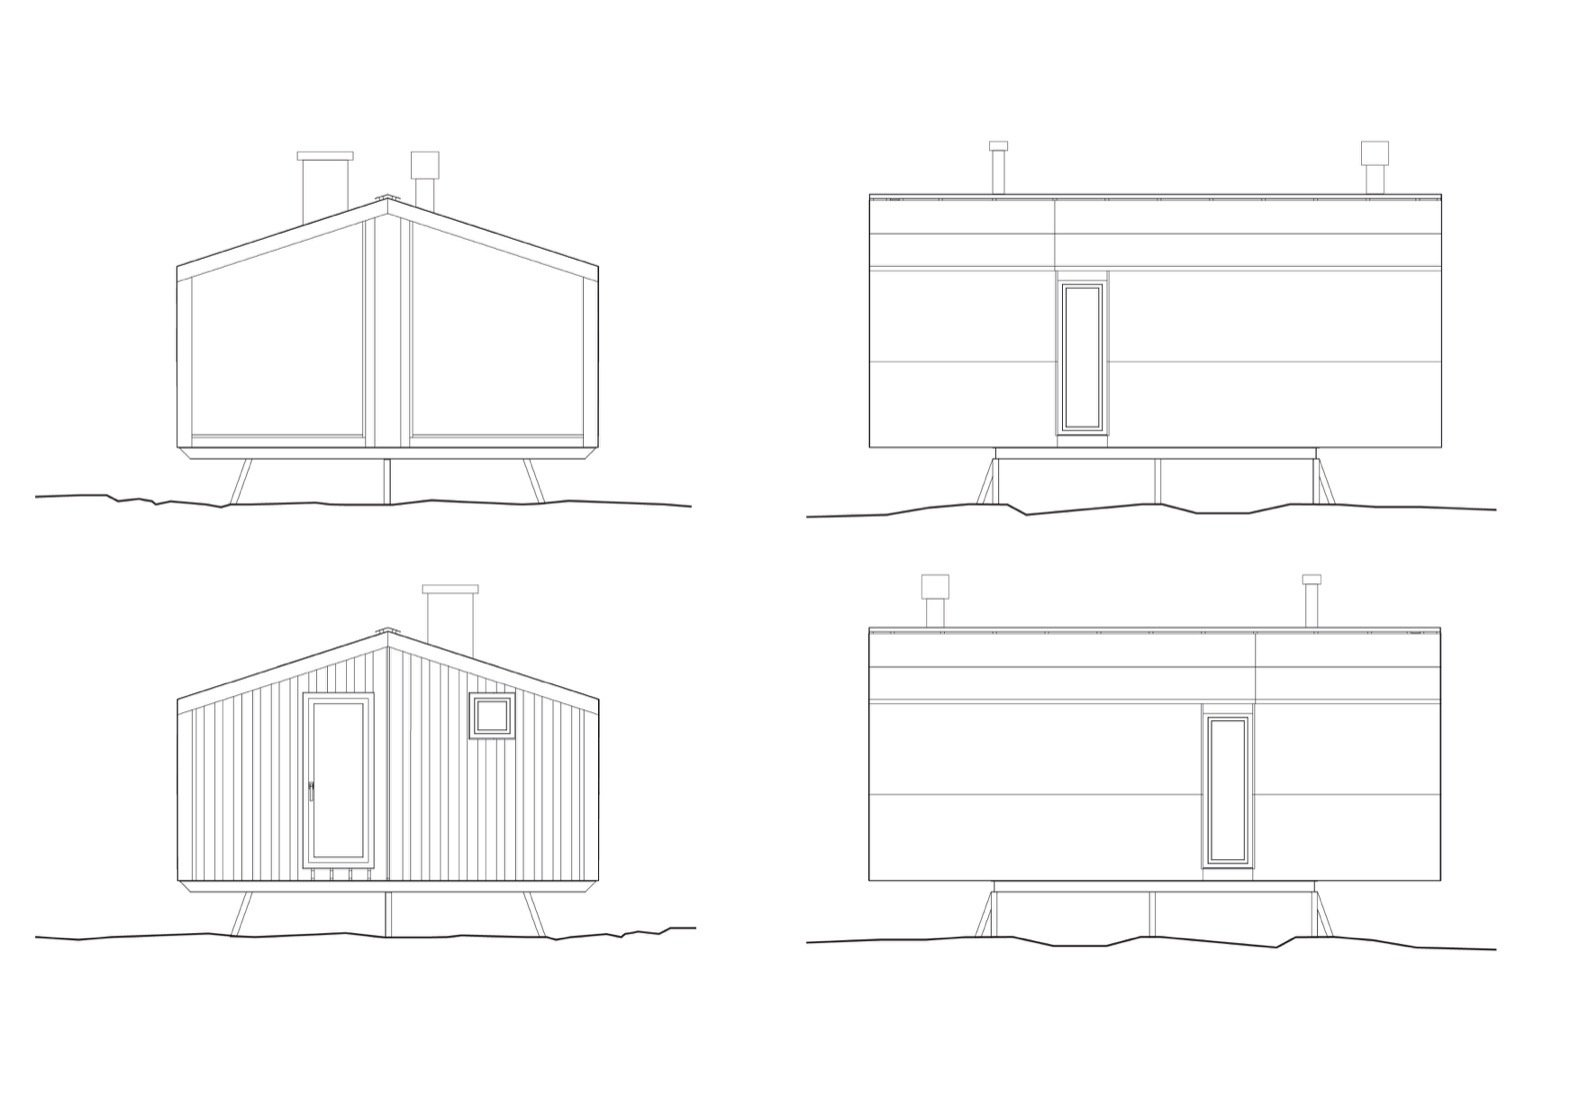 Dubldom in Kandalaksha elevation drawings.  Photo 20 of 22 in Go Off-Grid in Russia With This Bright Red Prefab Cabin